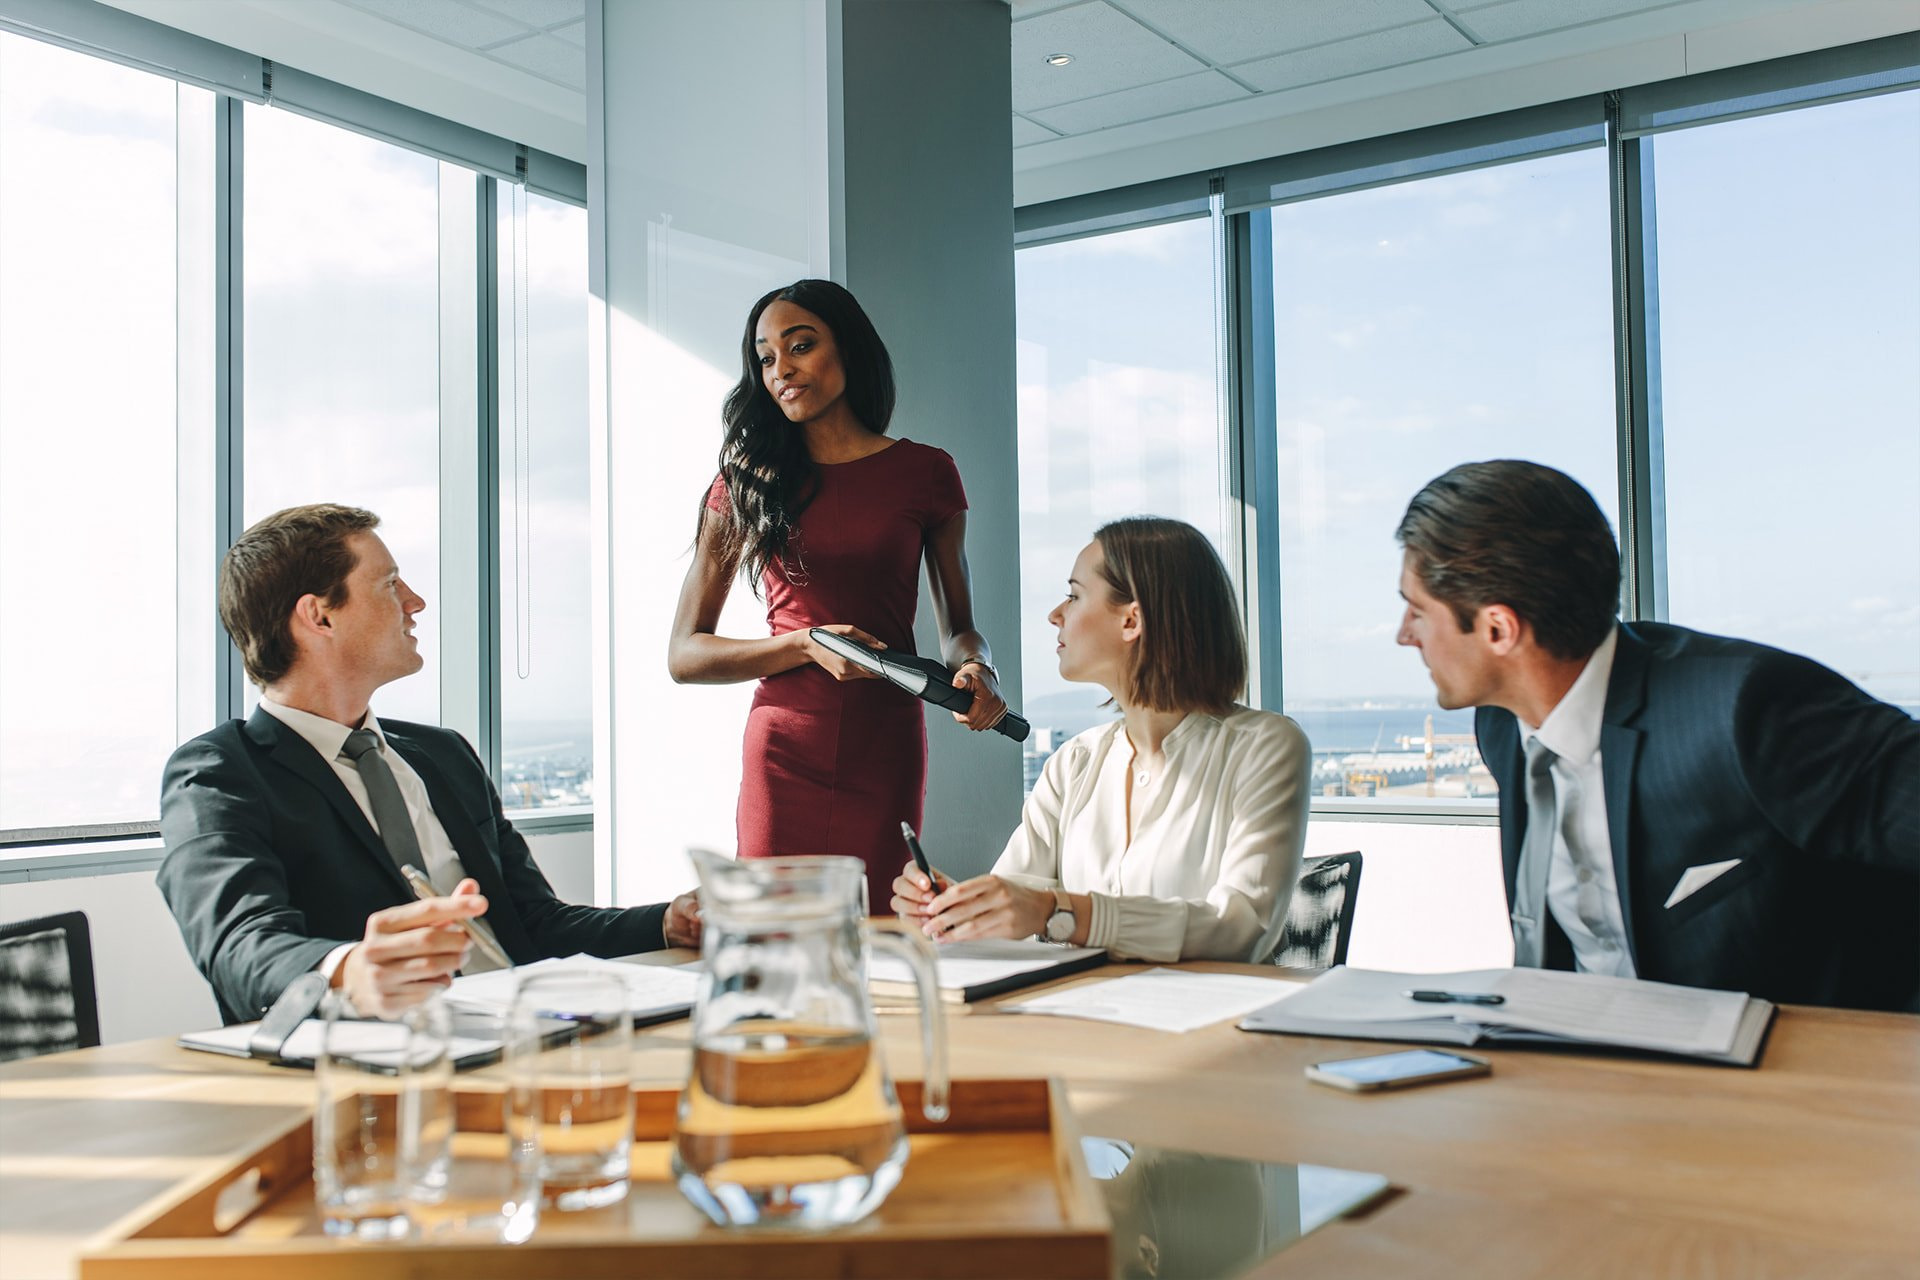 Group of business people talking around a meeting table